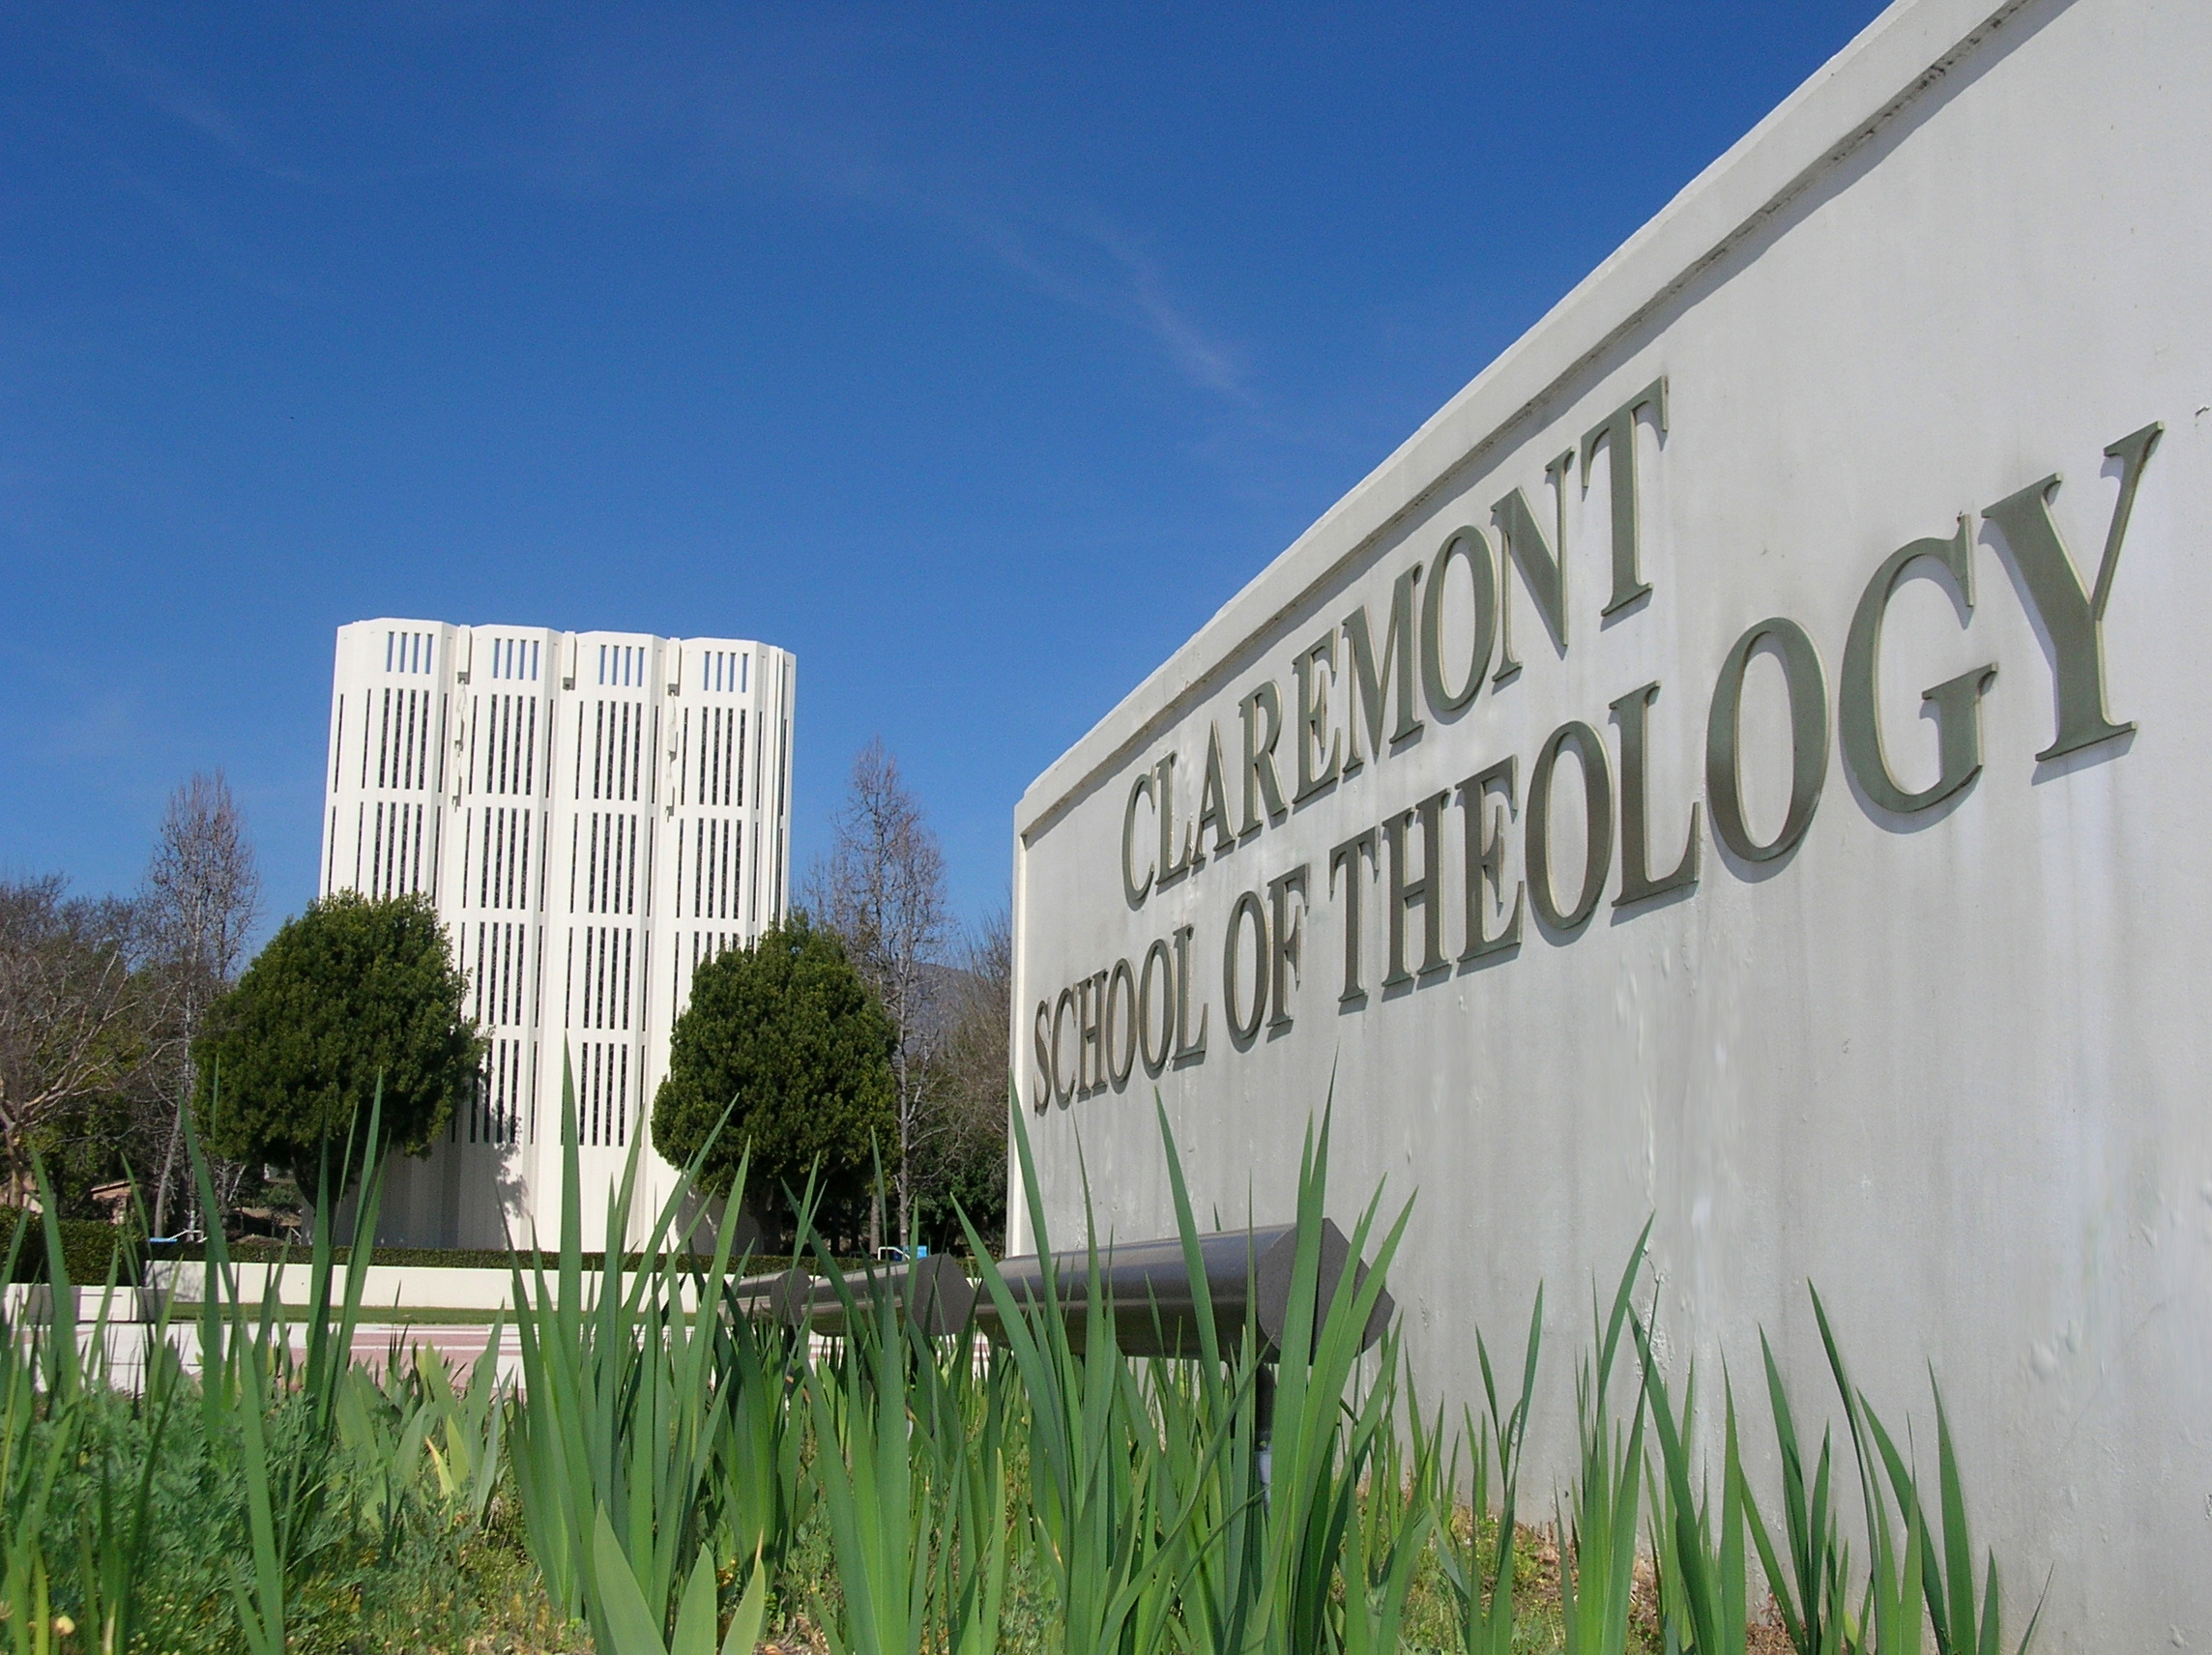 Claremont School of Theology, in Claremont, California, had been on warning status by its accrediting agency, but the warning has been removed due to improvements in enrollment, finances and other areas. The United Methodist seminary is planning a cost-saving move to Willamette University in Salem, Oregon. Photo courtesy of Claremont School of Theology.